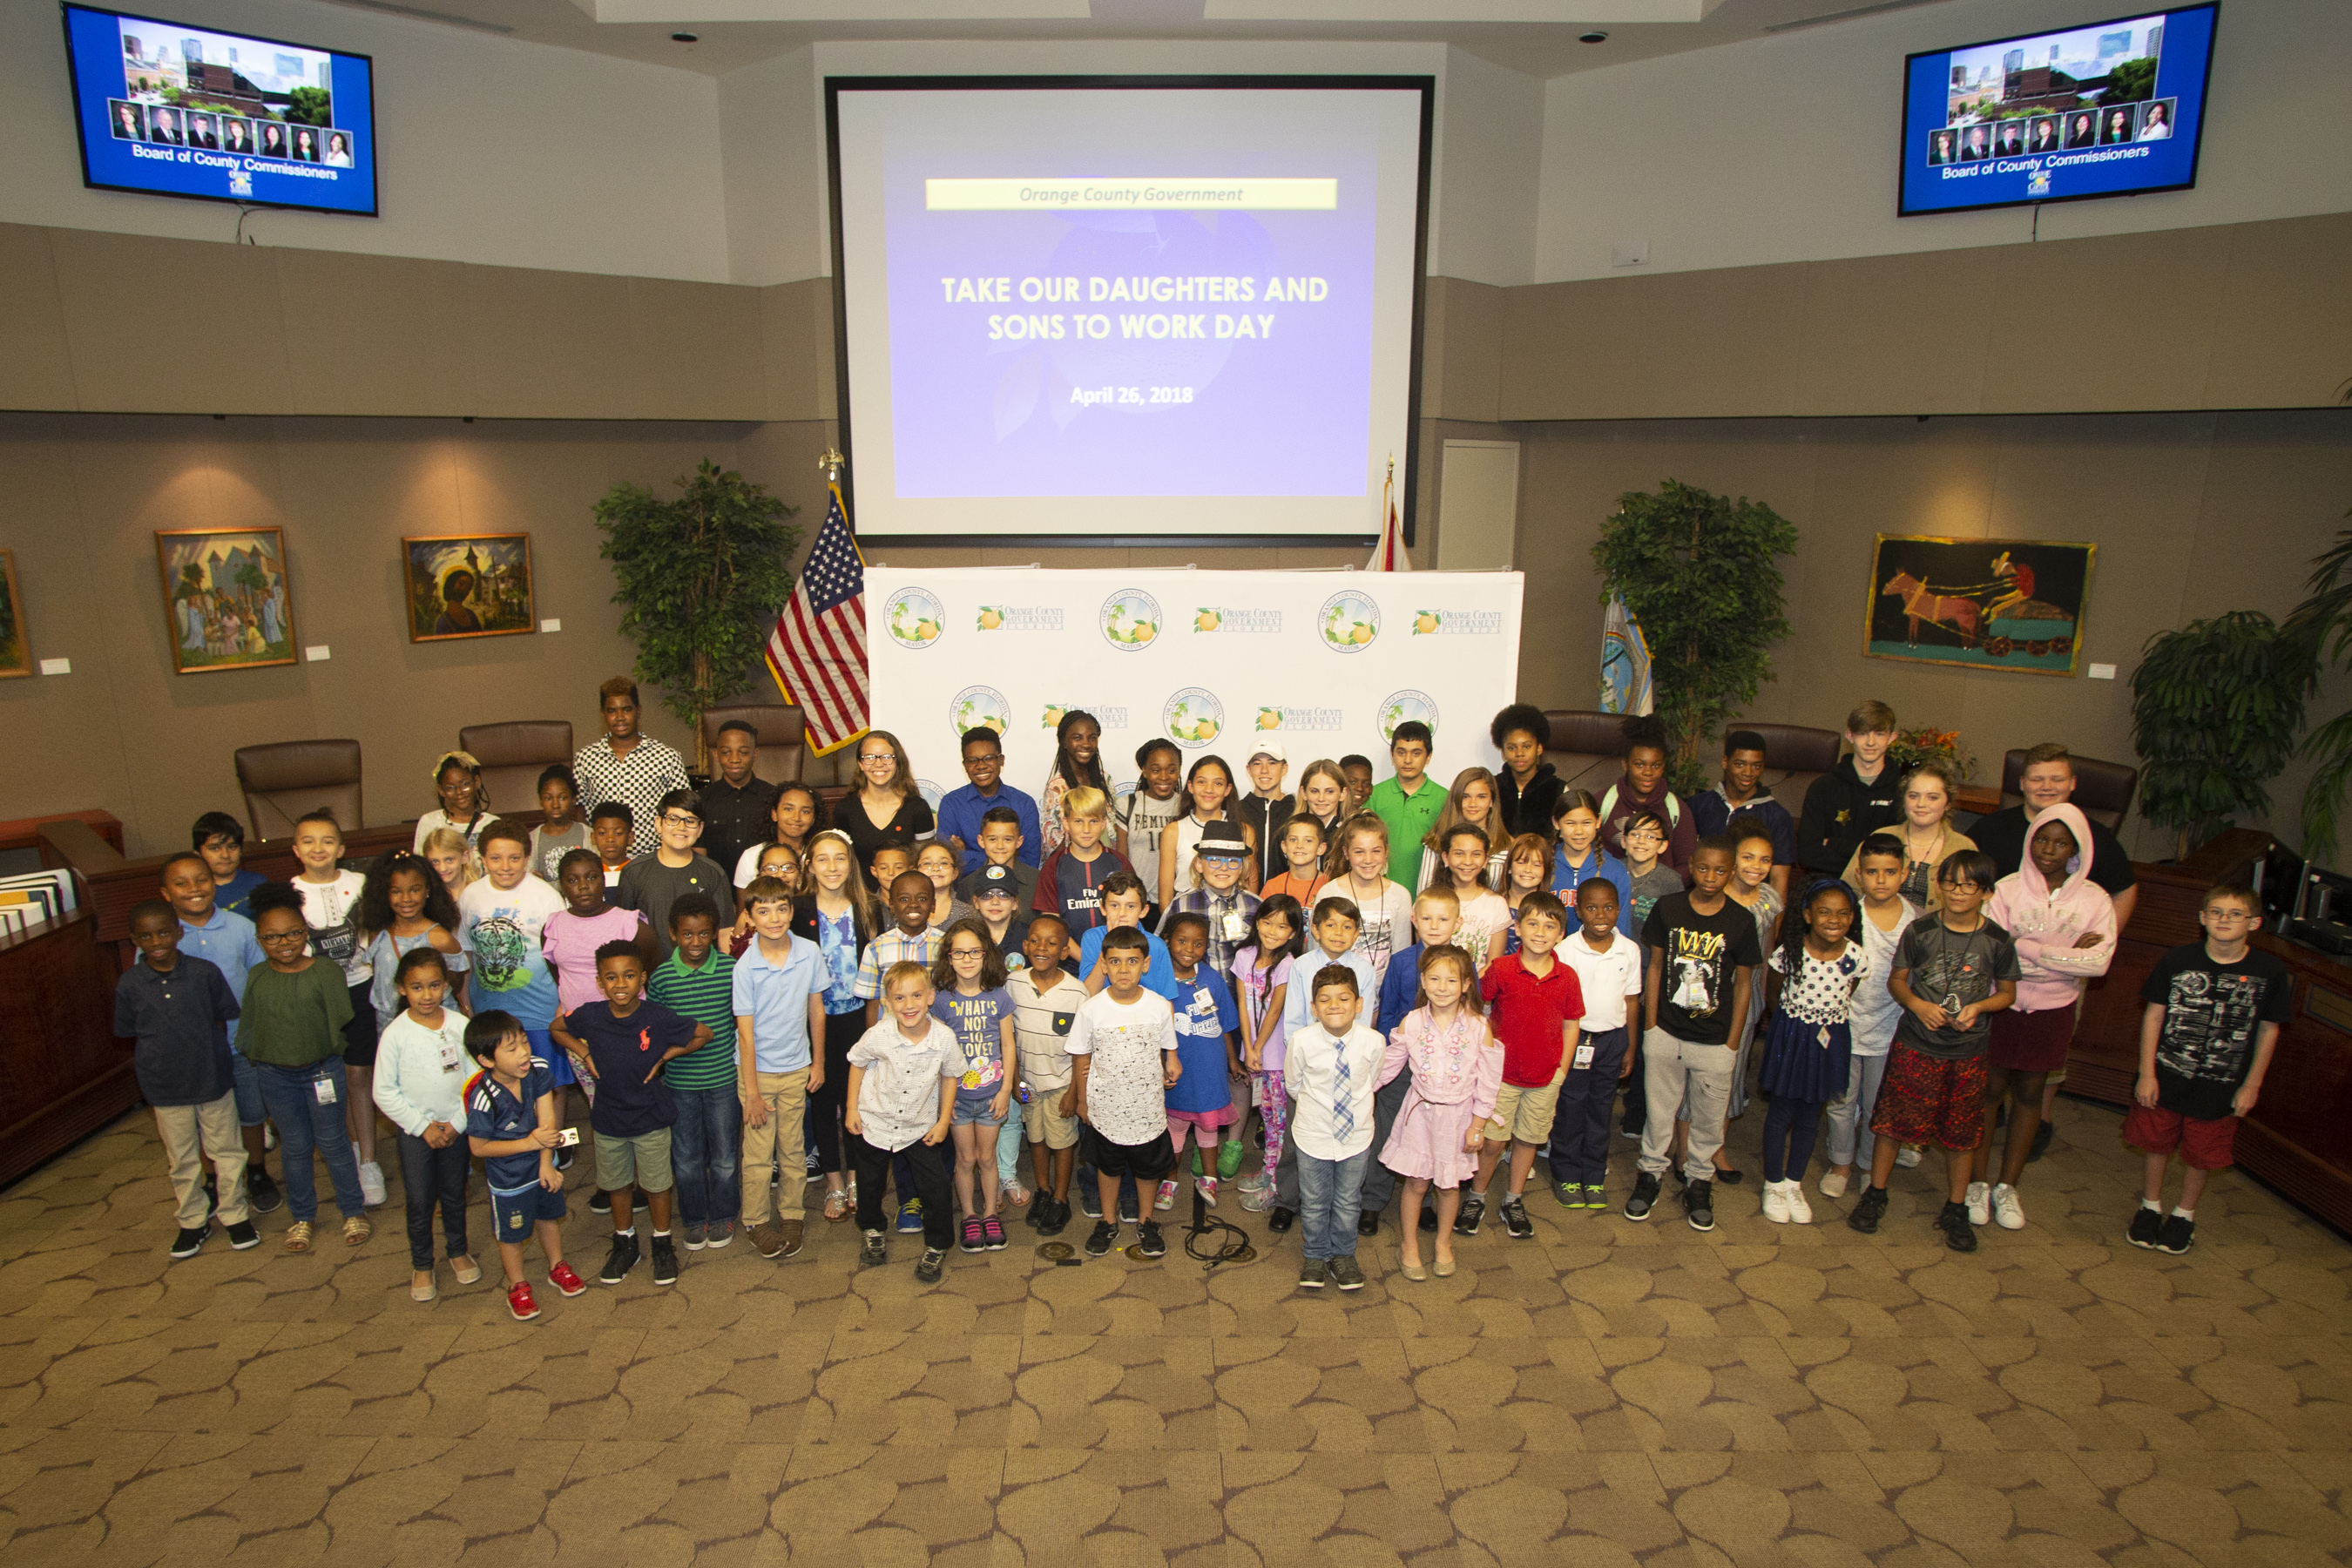 Mayor Jacobs and dozens of children posing for a picture in the Board of County Commissioners chambers